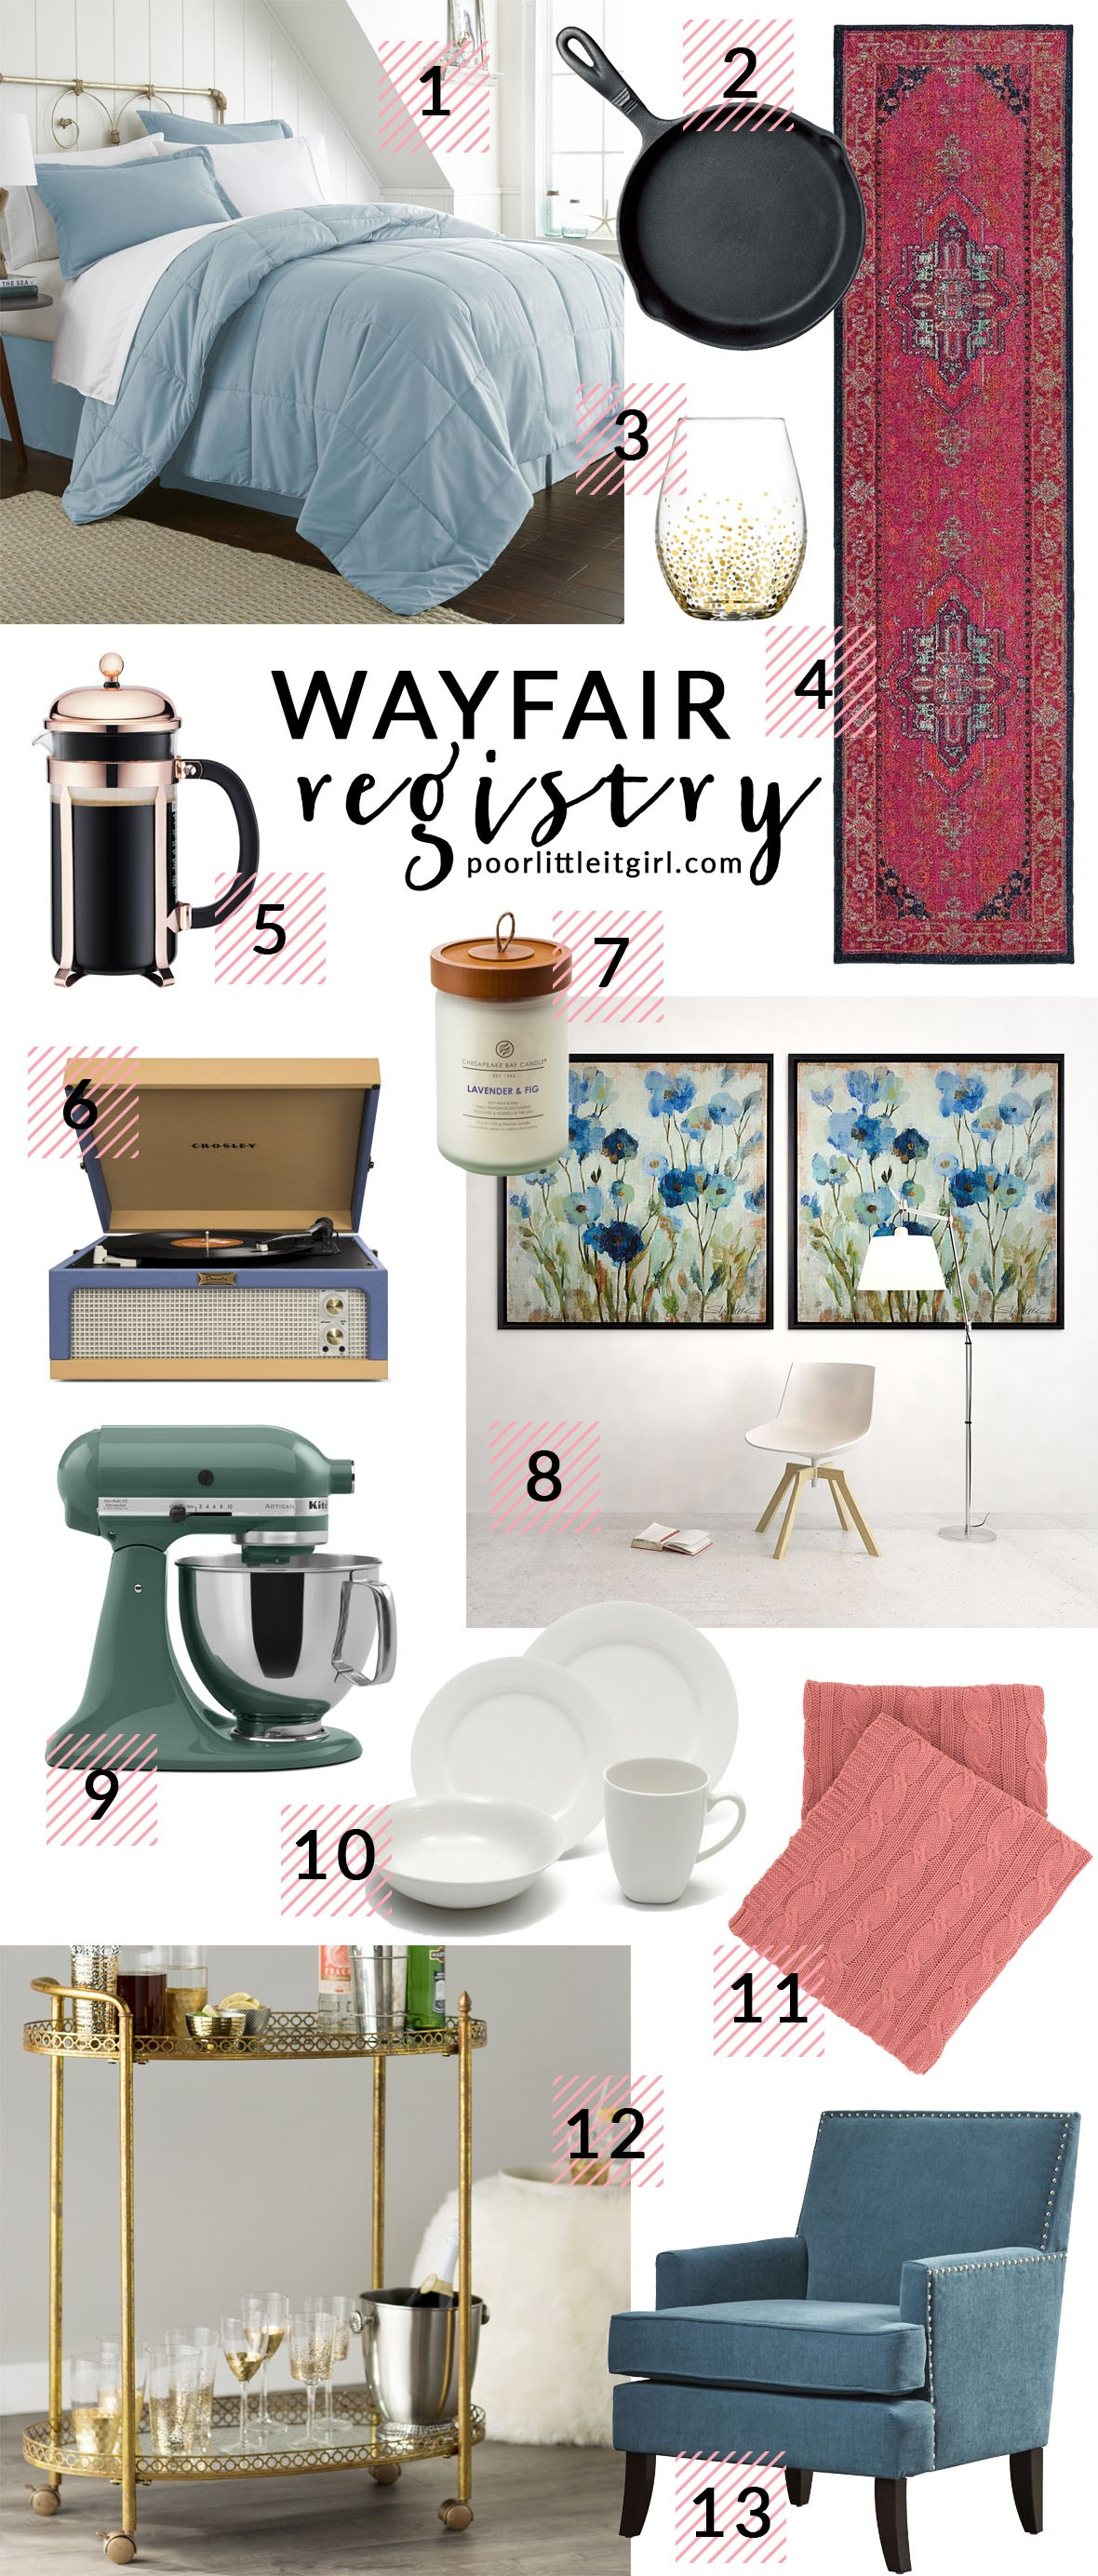 Wayfair Registry Launch And Sweepstakes Poor Little It Girl